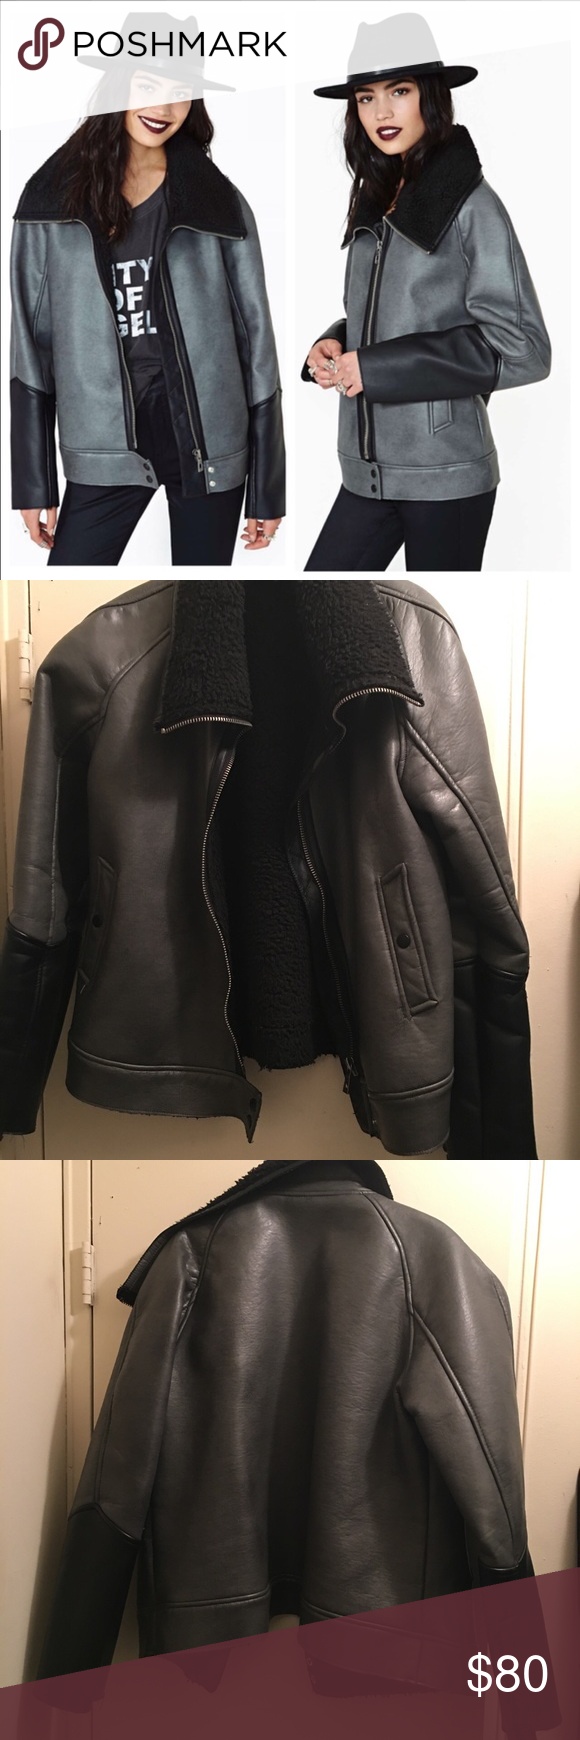 Eternal City Faux Leather Shearling Moto Jacket Slightly Worn Faux Leather Shearling Moto Jacket Nasty Gal Jackets & Coats